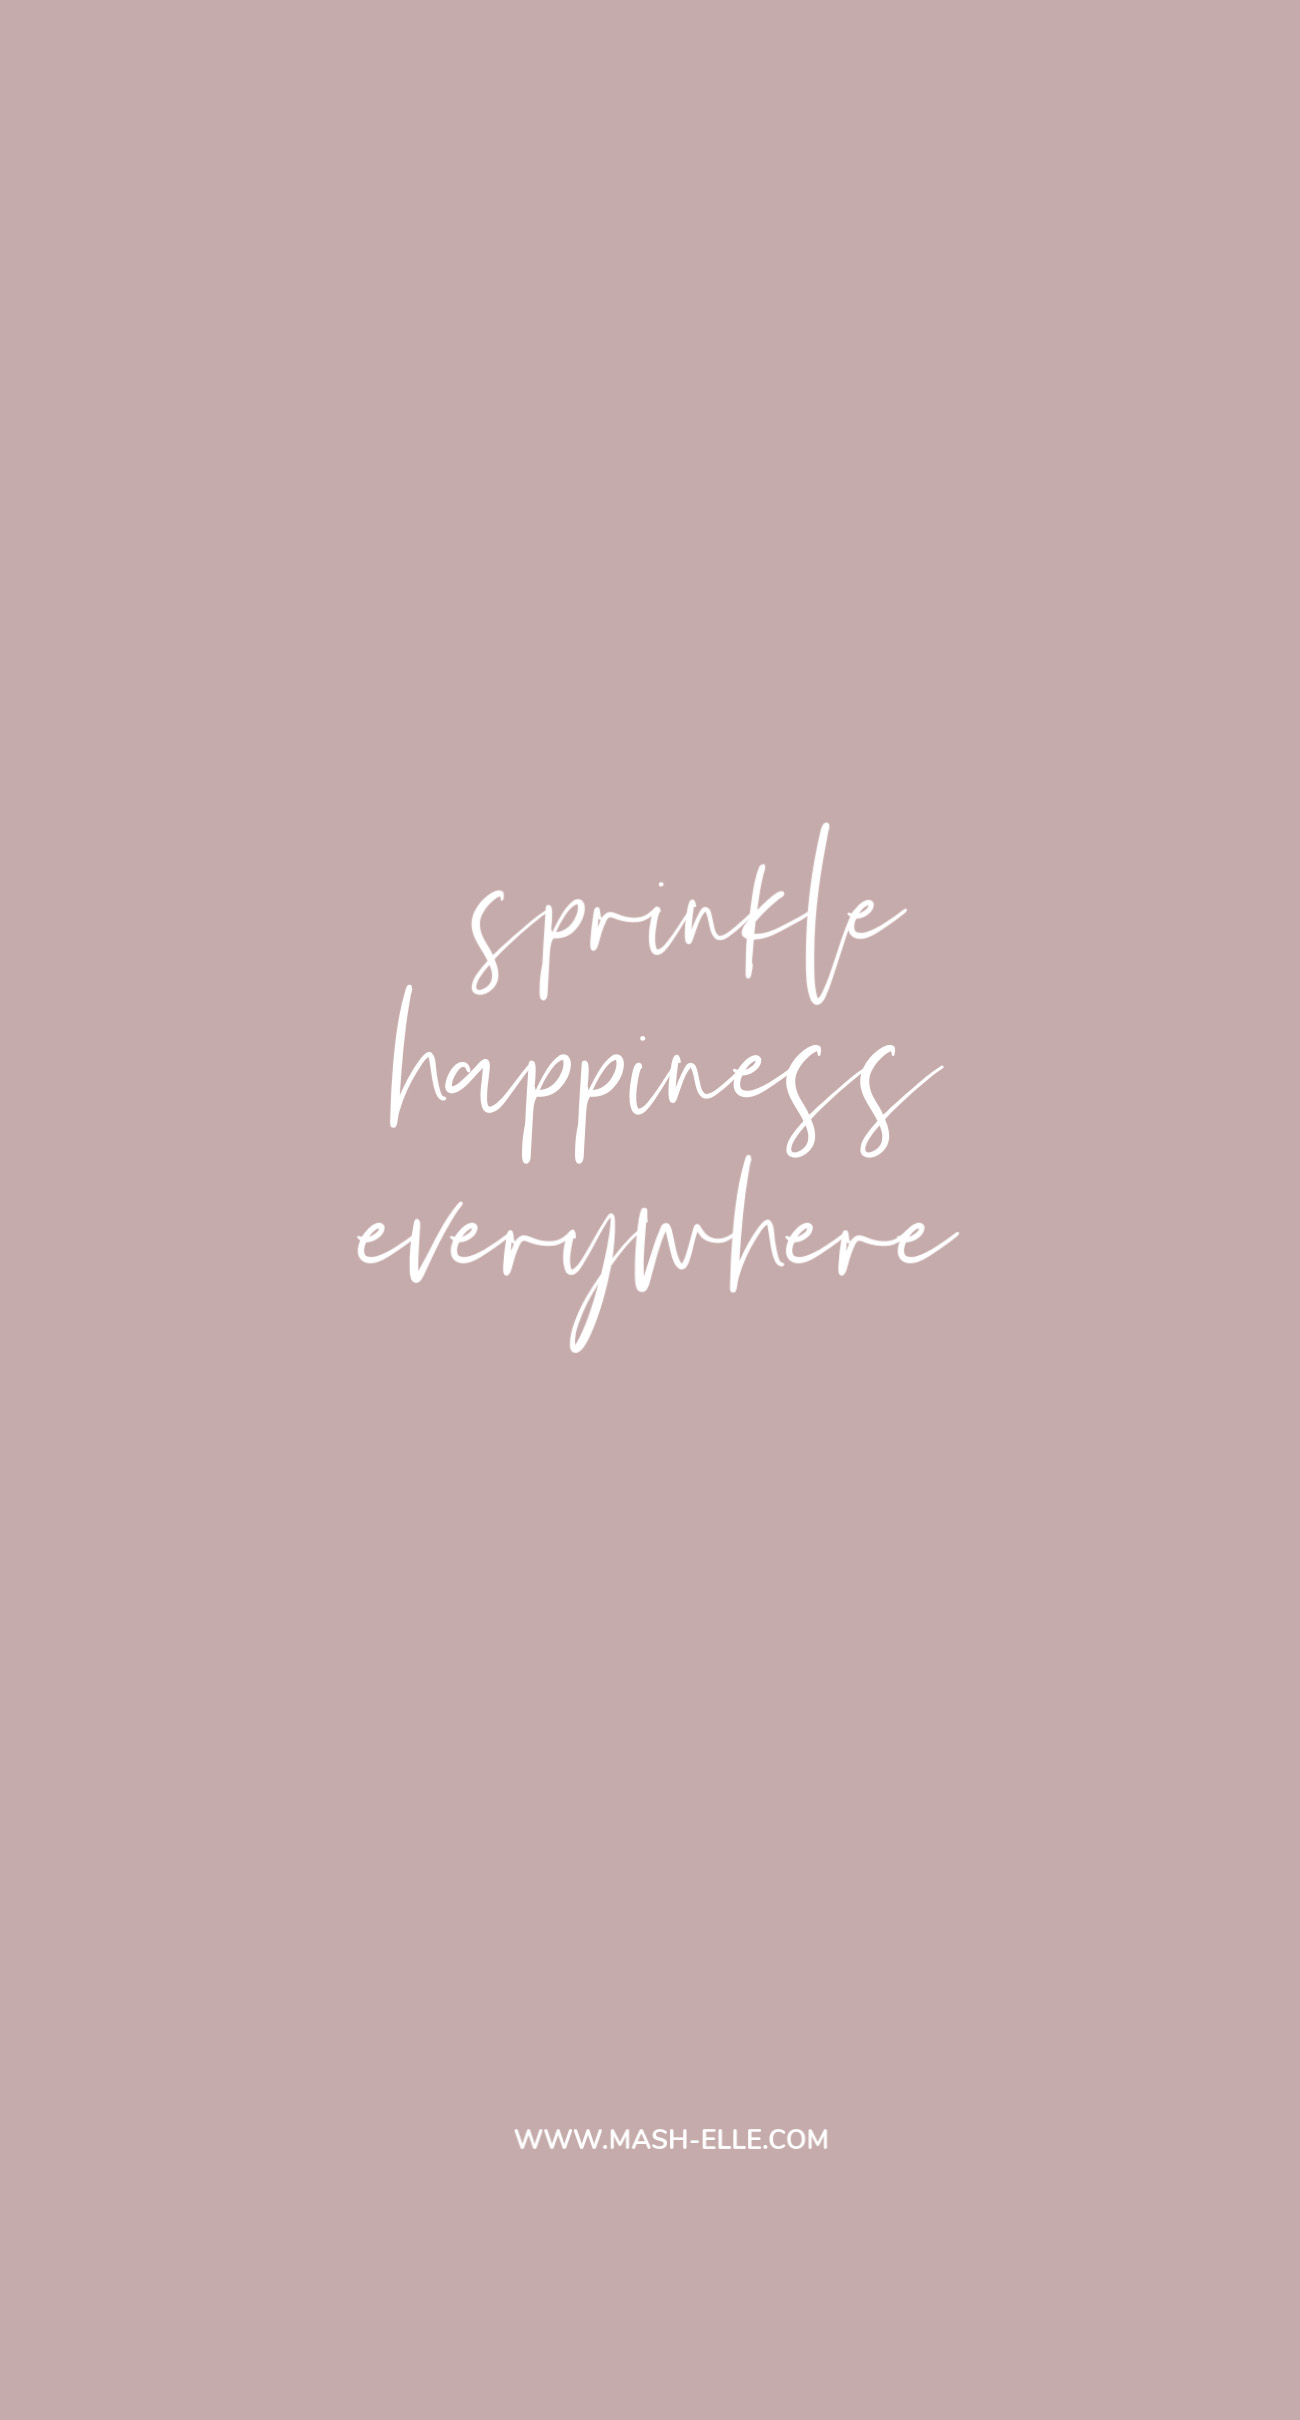 wallpapers | inspirational wallpapers | lifestyle blogger Mash Elle | inspo | happy wallpapers